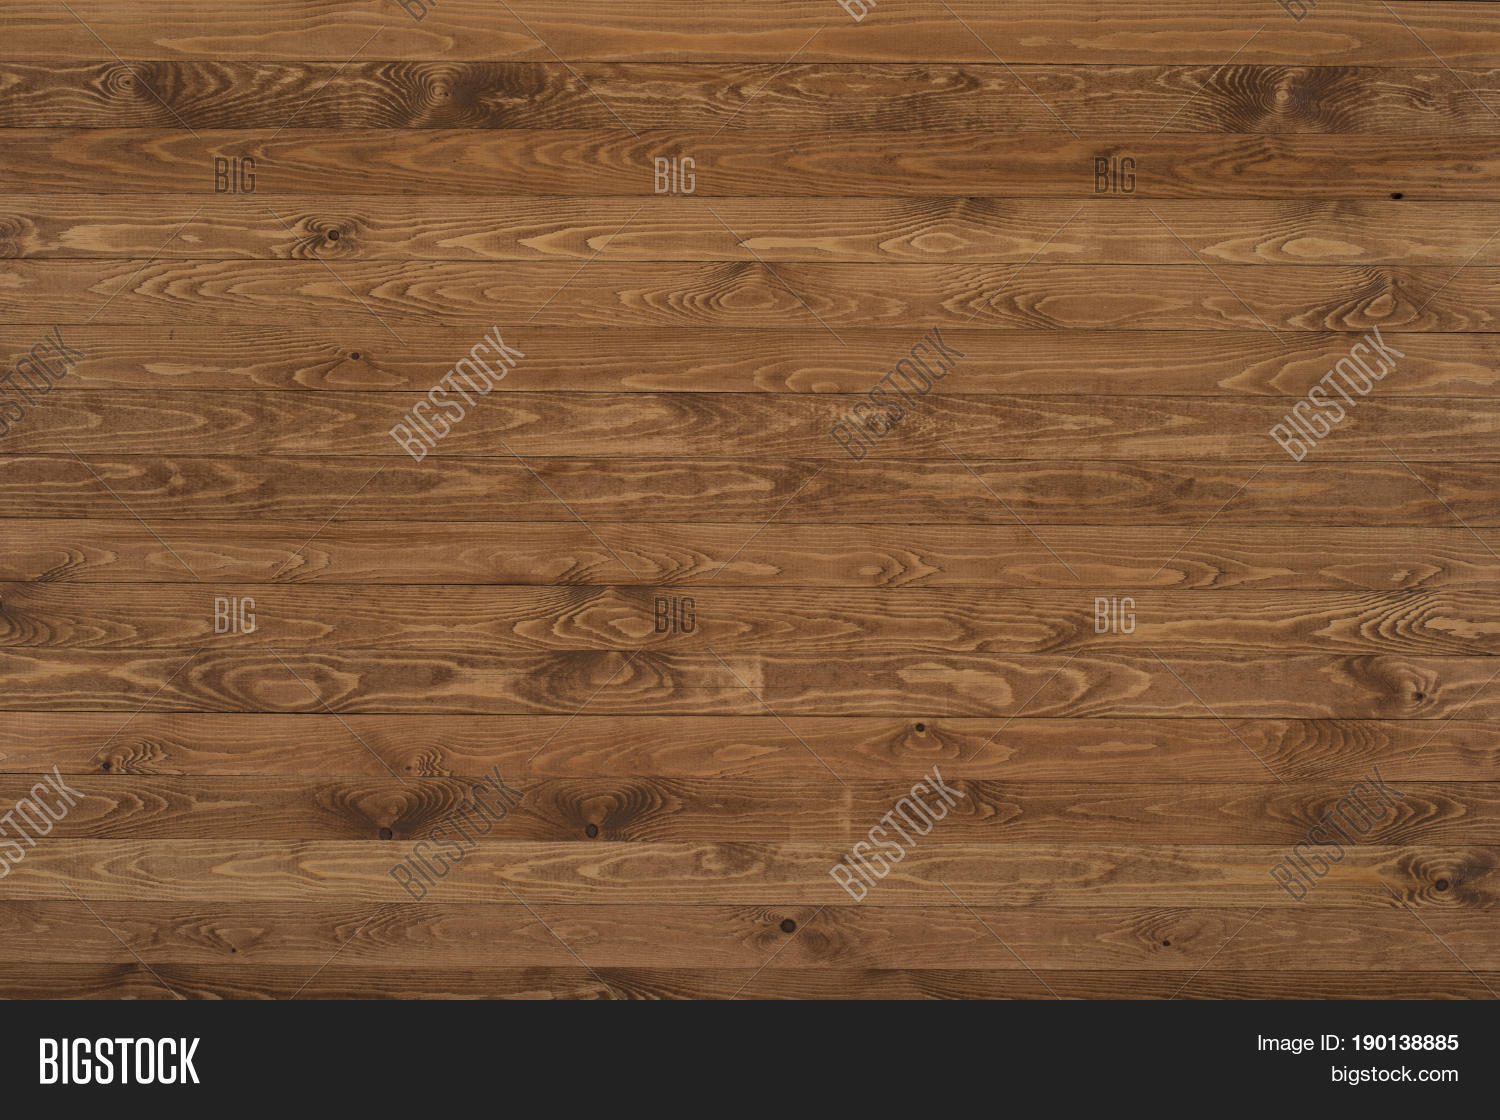 Dinner Table Background empty wood table for product placement or montage. wood table top